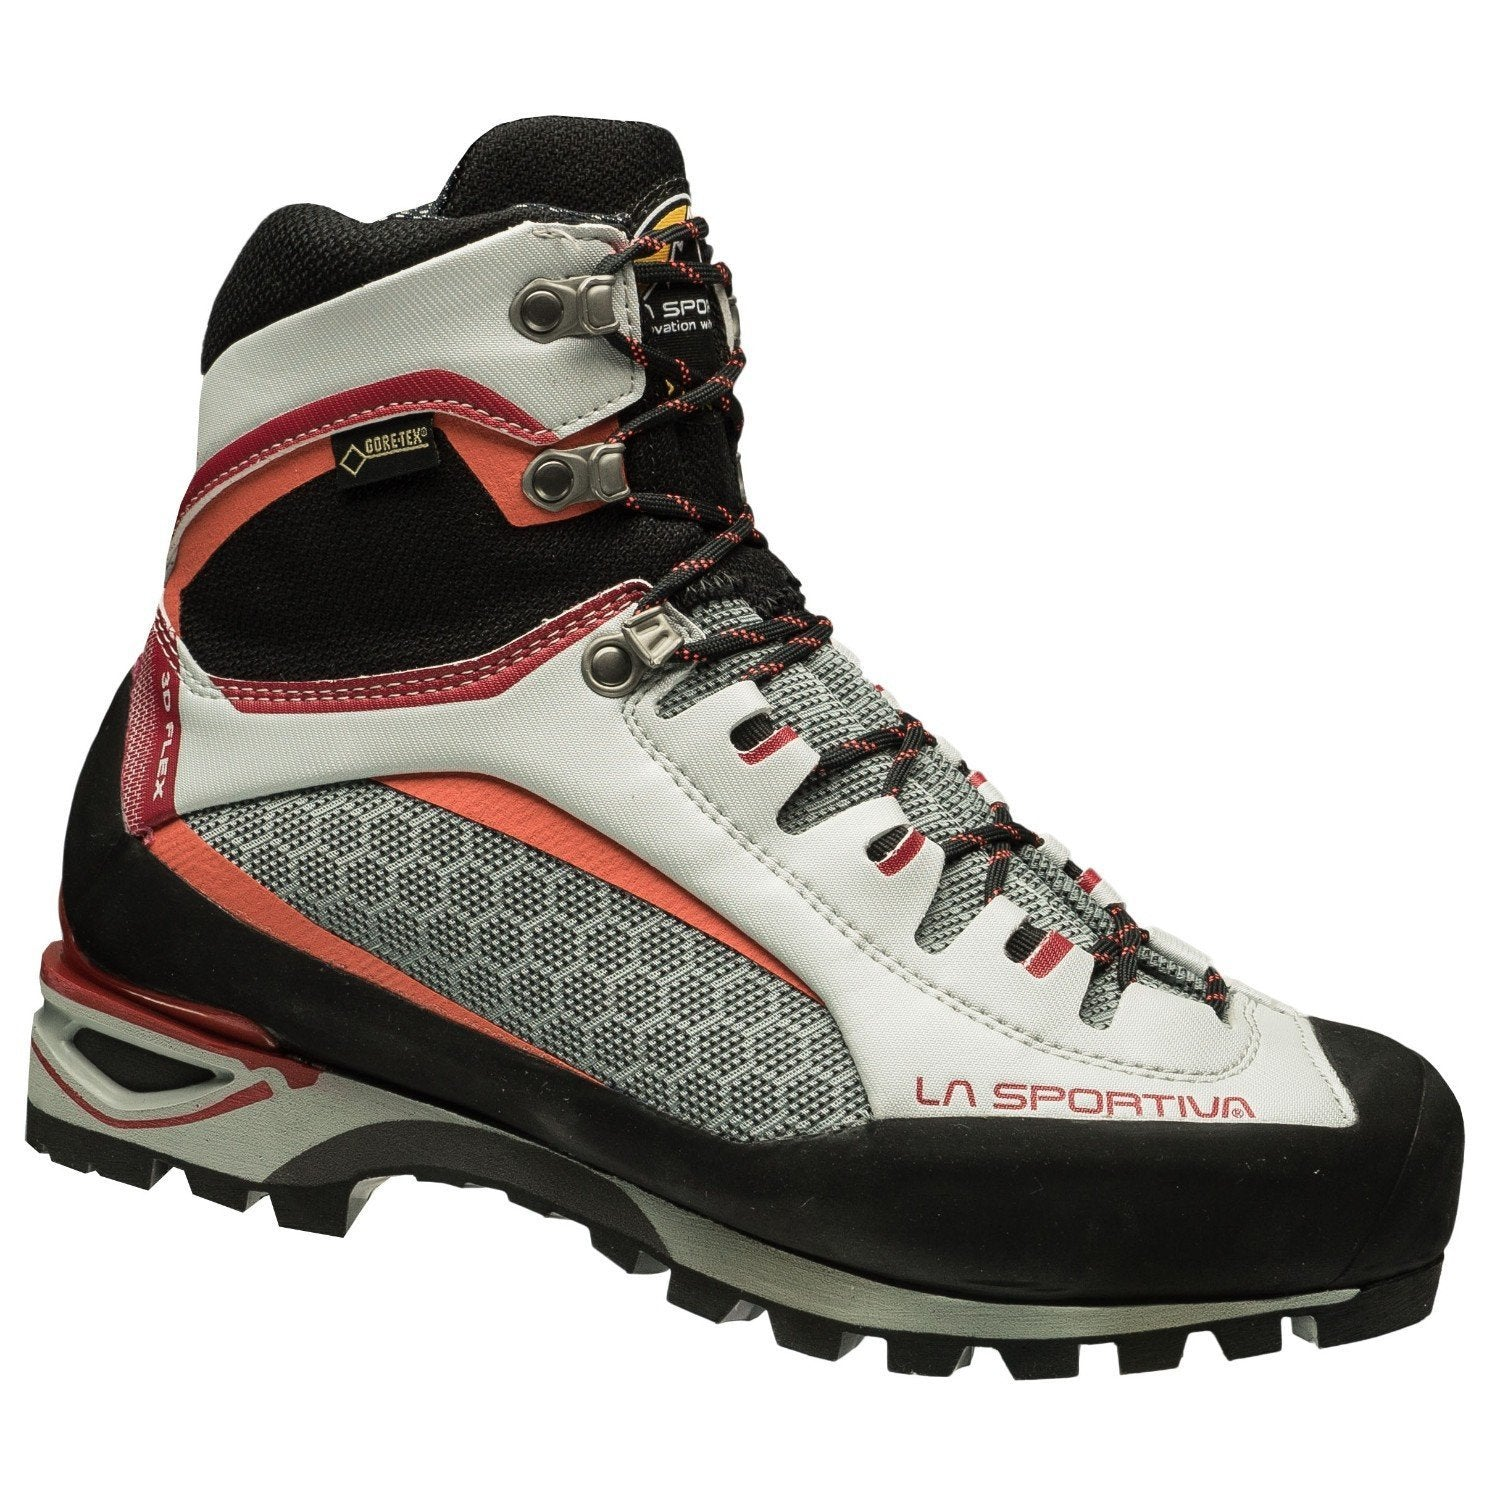 La Sportiva Trango Tower GTX Womens mountaineering boot, in black, grey and red colours